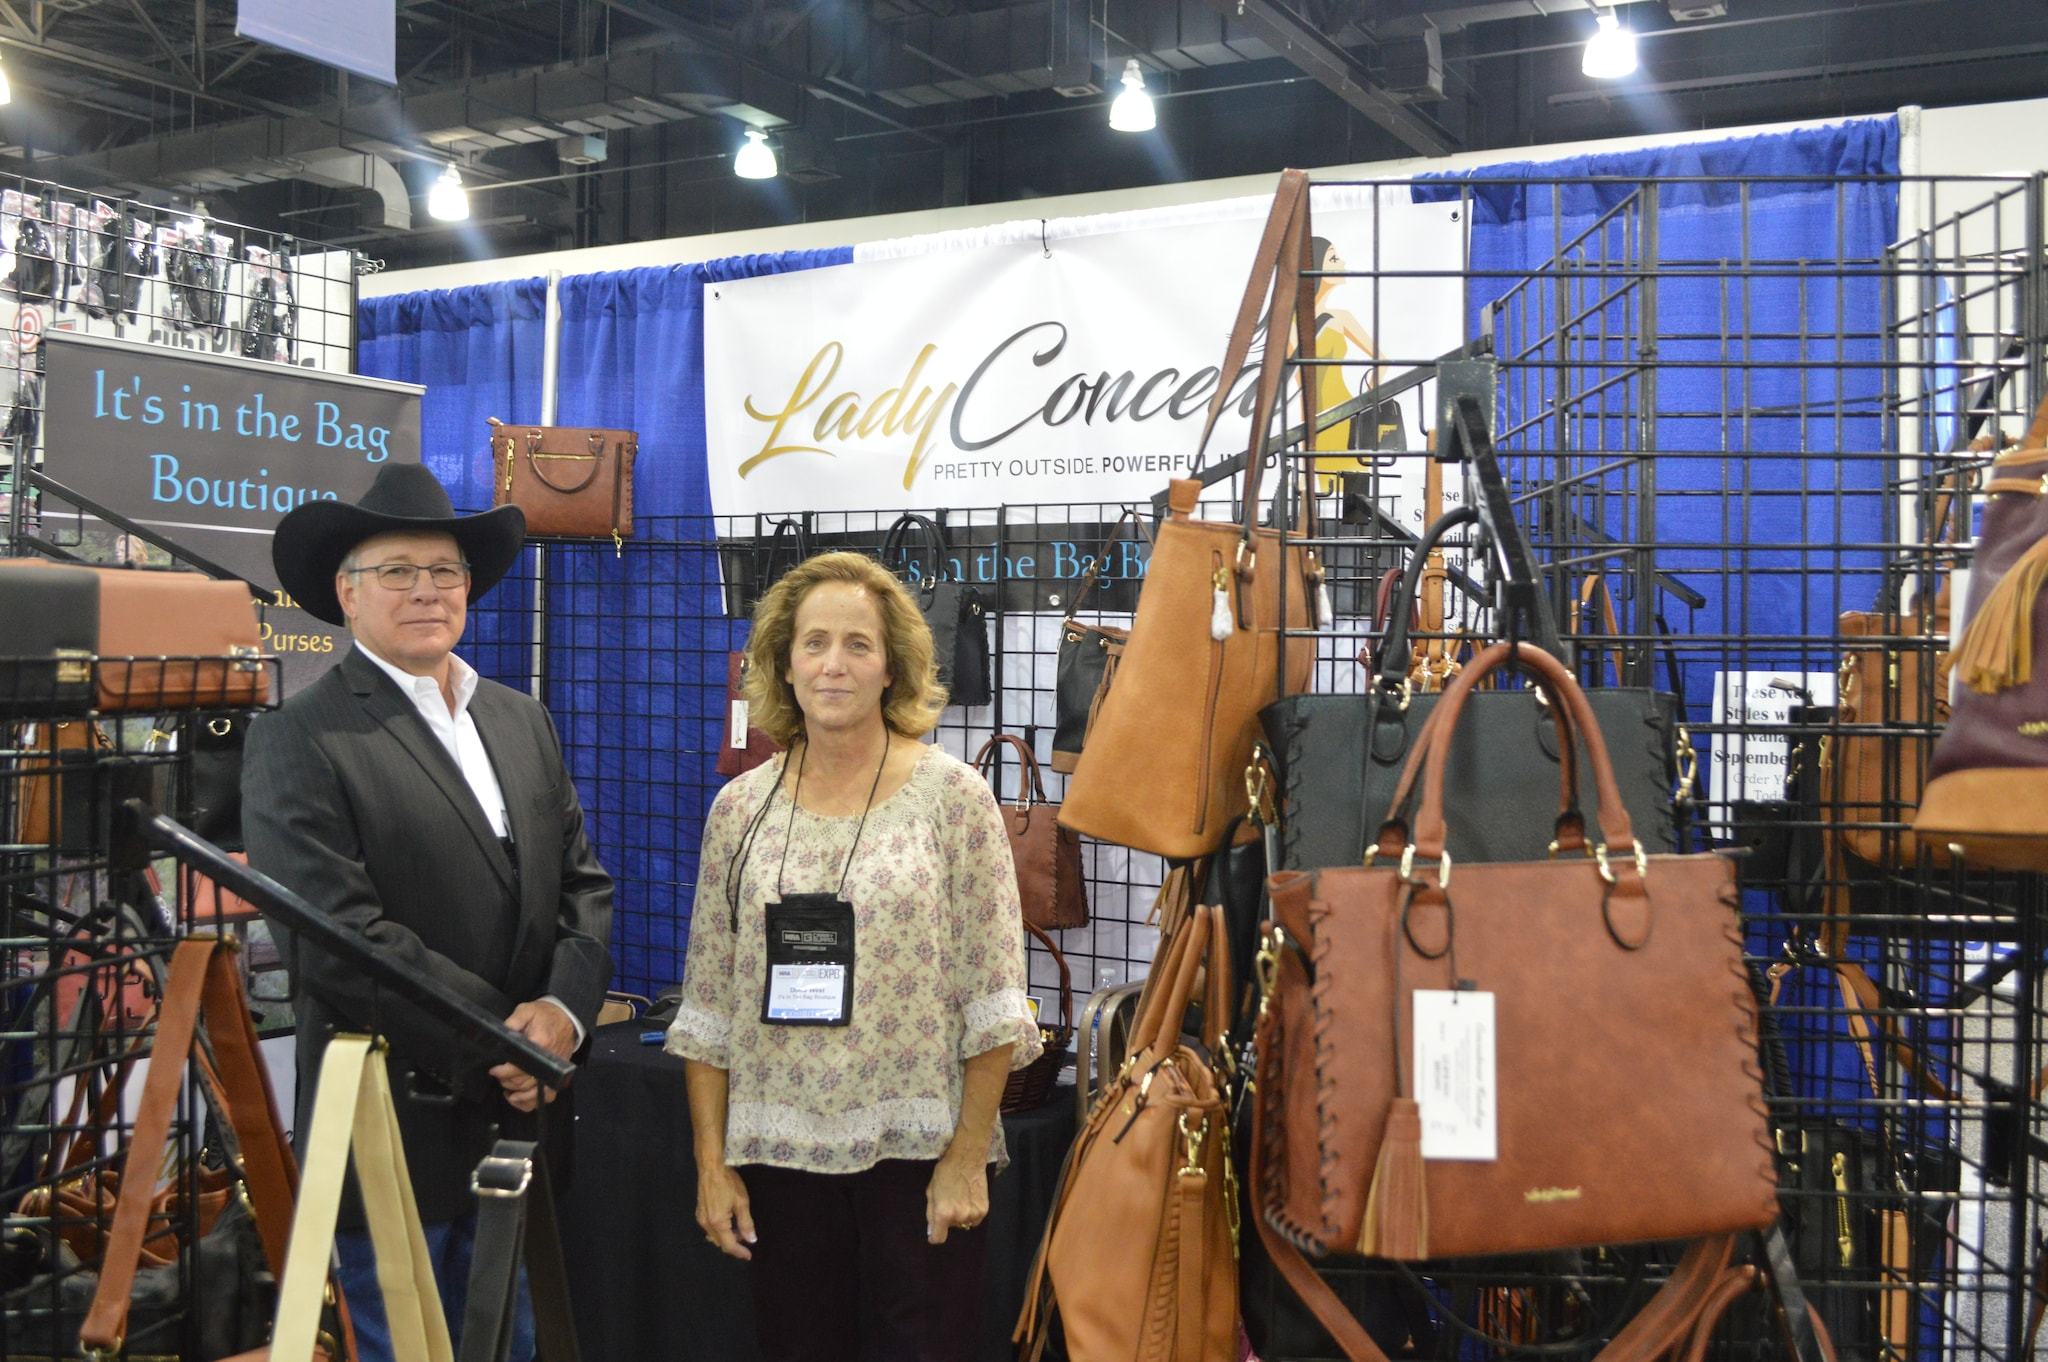 Sometimes you just meet a nice American family who makes quality gear, and that's what we found at the Lady Conceal booth. The West family shows off a full line of leather purses, handbags, and gear for men as well. (Photo: Kristin Alberts/Guns.com)